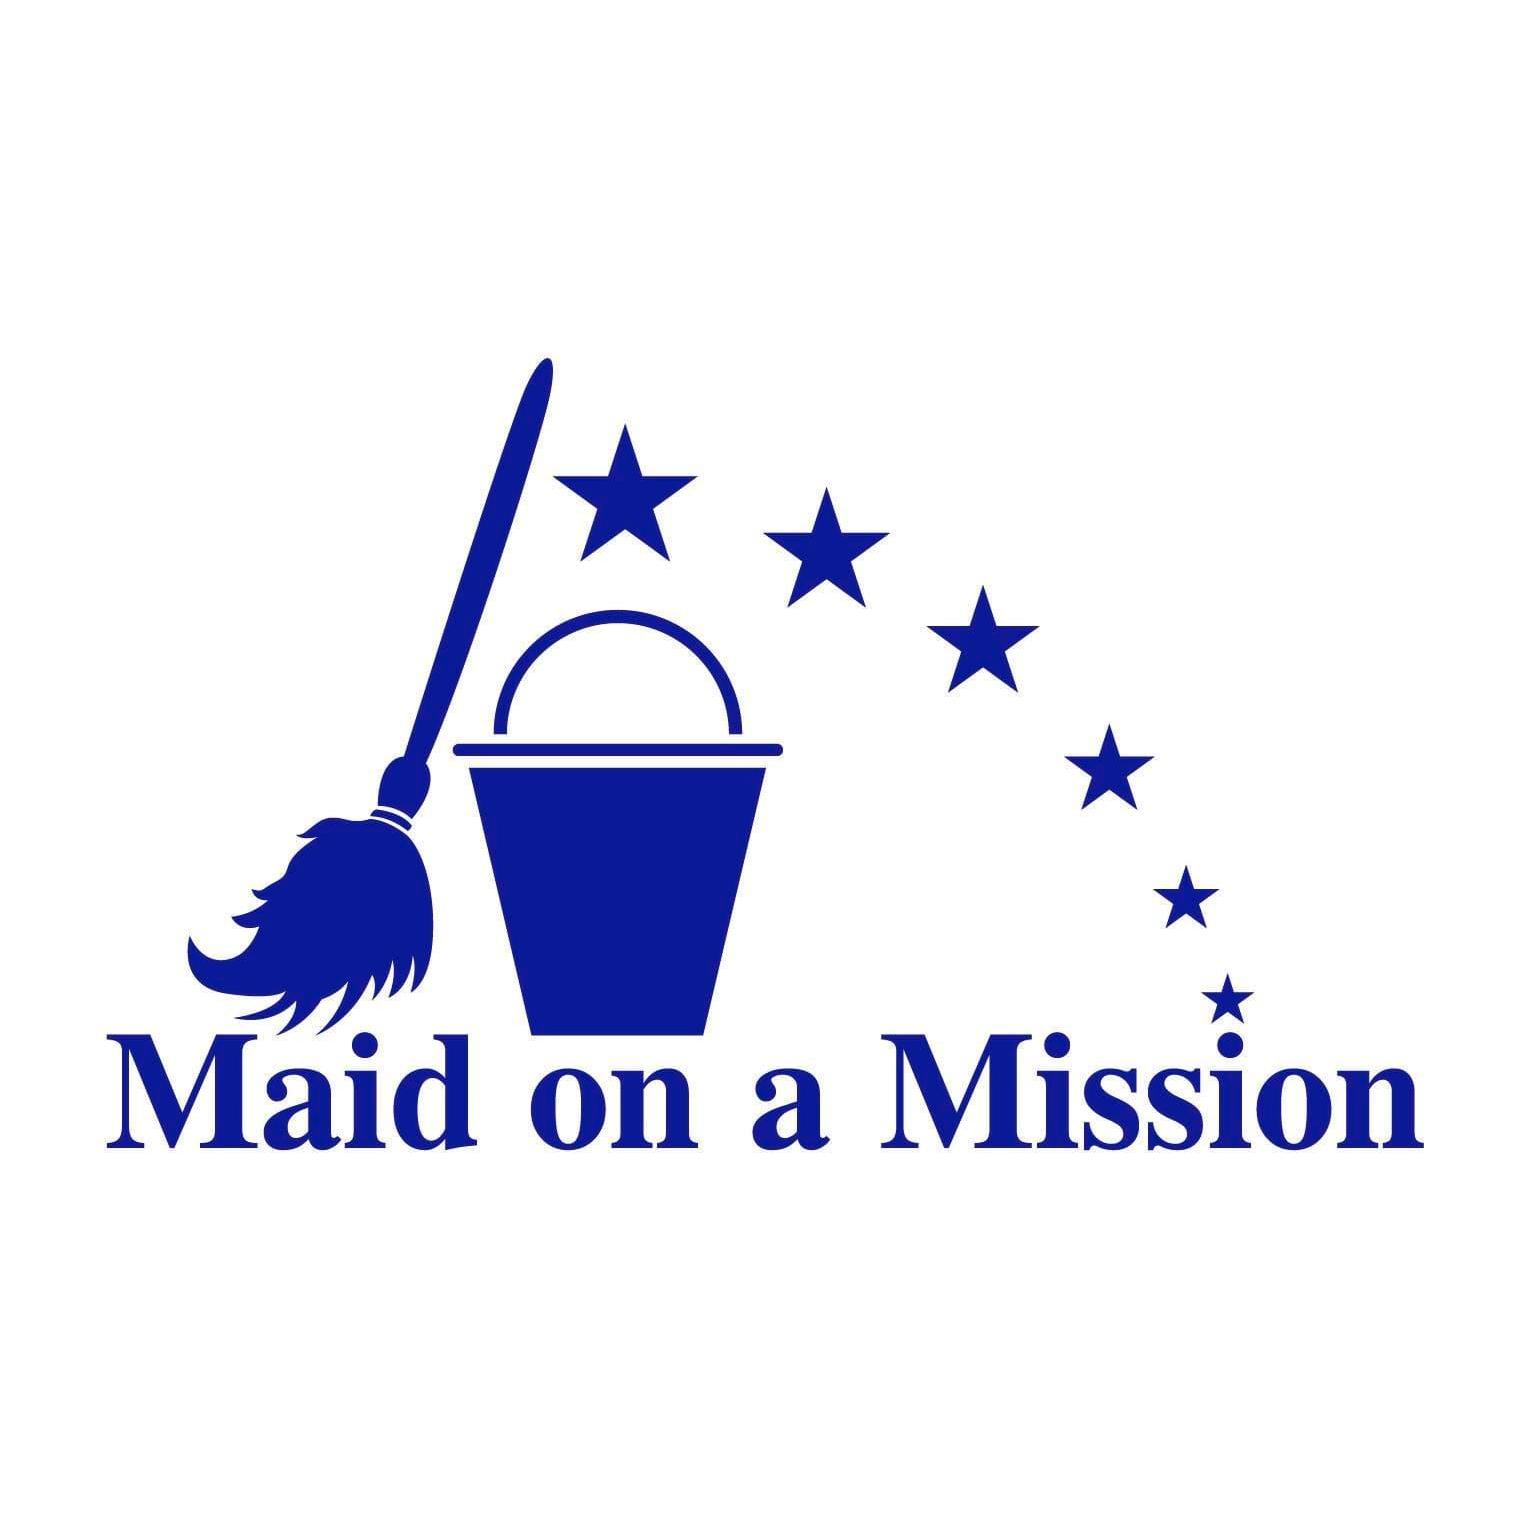 Maid on a Mission - Welling, London DA16 1JS - 03333 702529 | ShowMeLocal.com